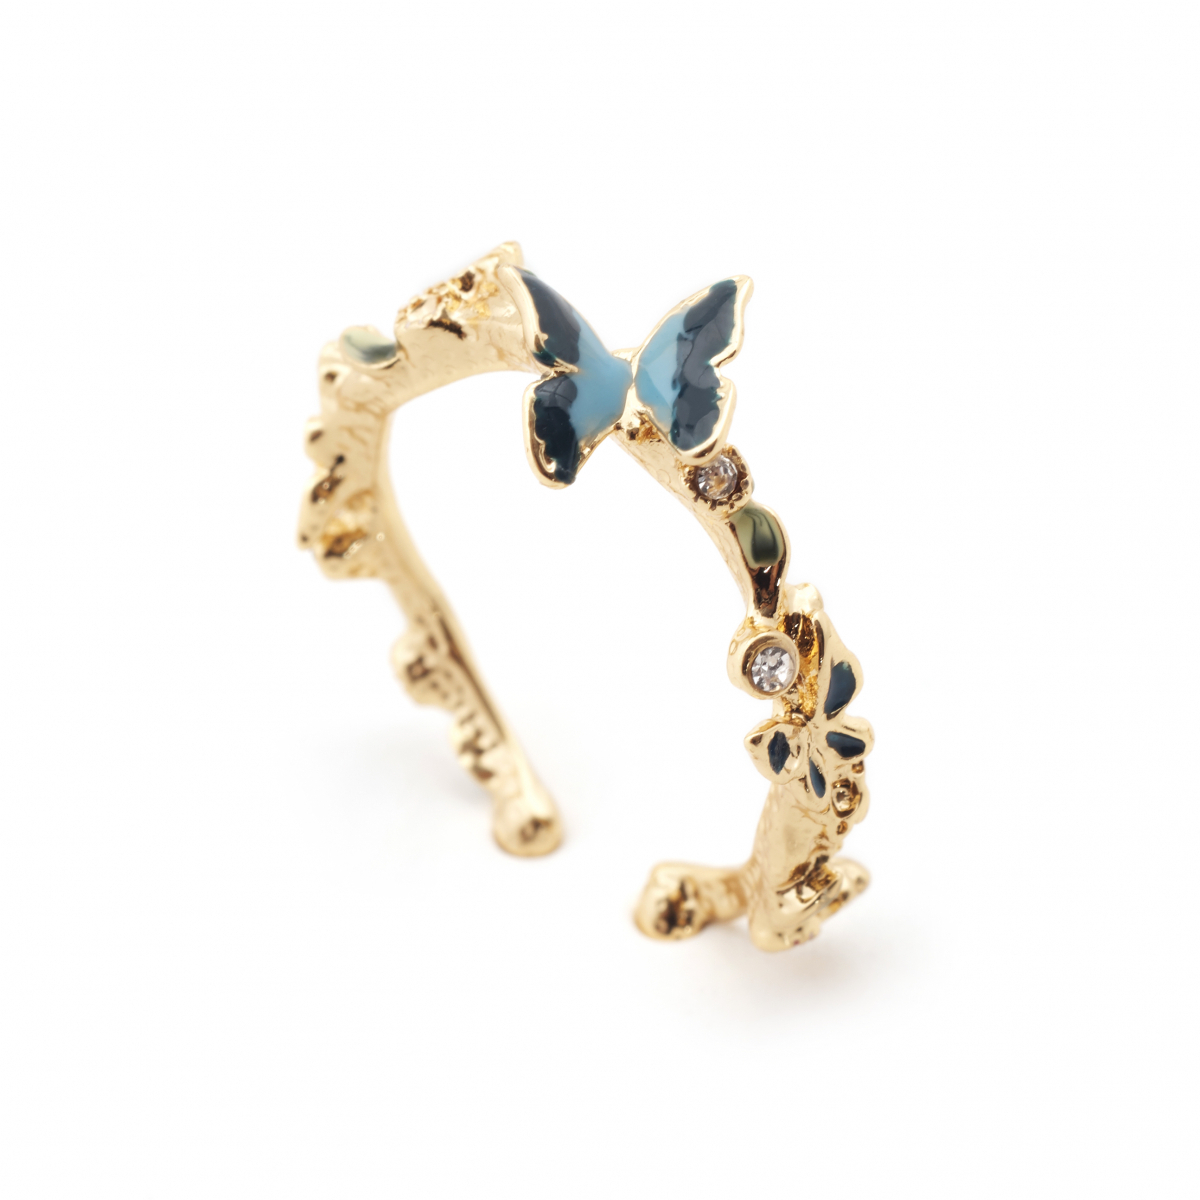 Butterfly & Crystal Open Ring – Gold Intended For Recent Butterfly Open Rings (Gallery 6 of 25)